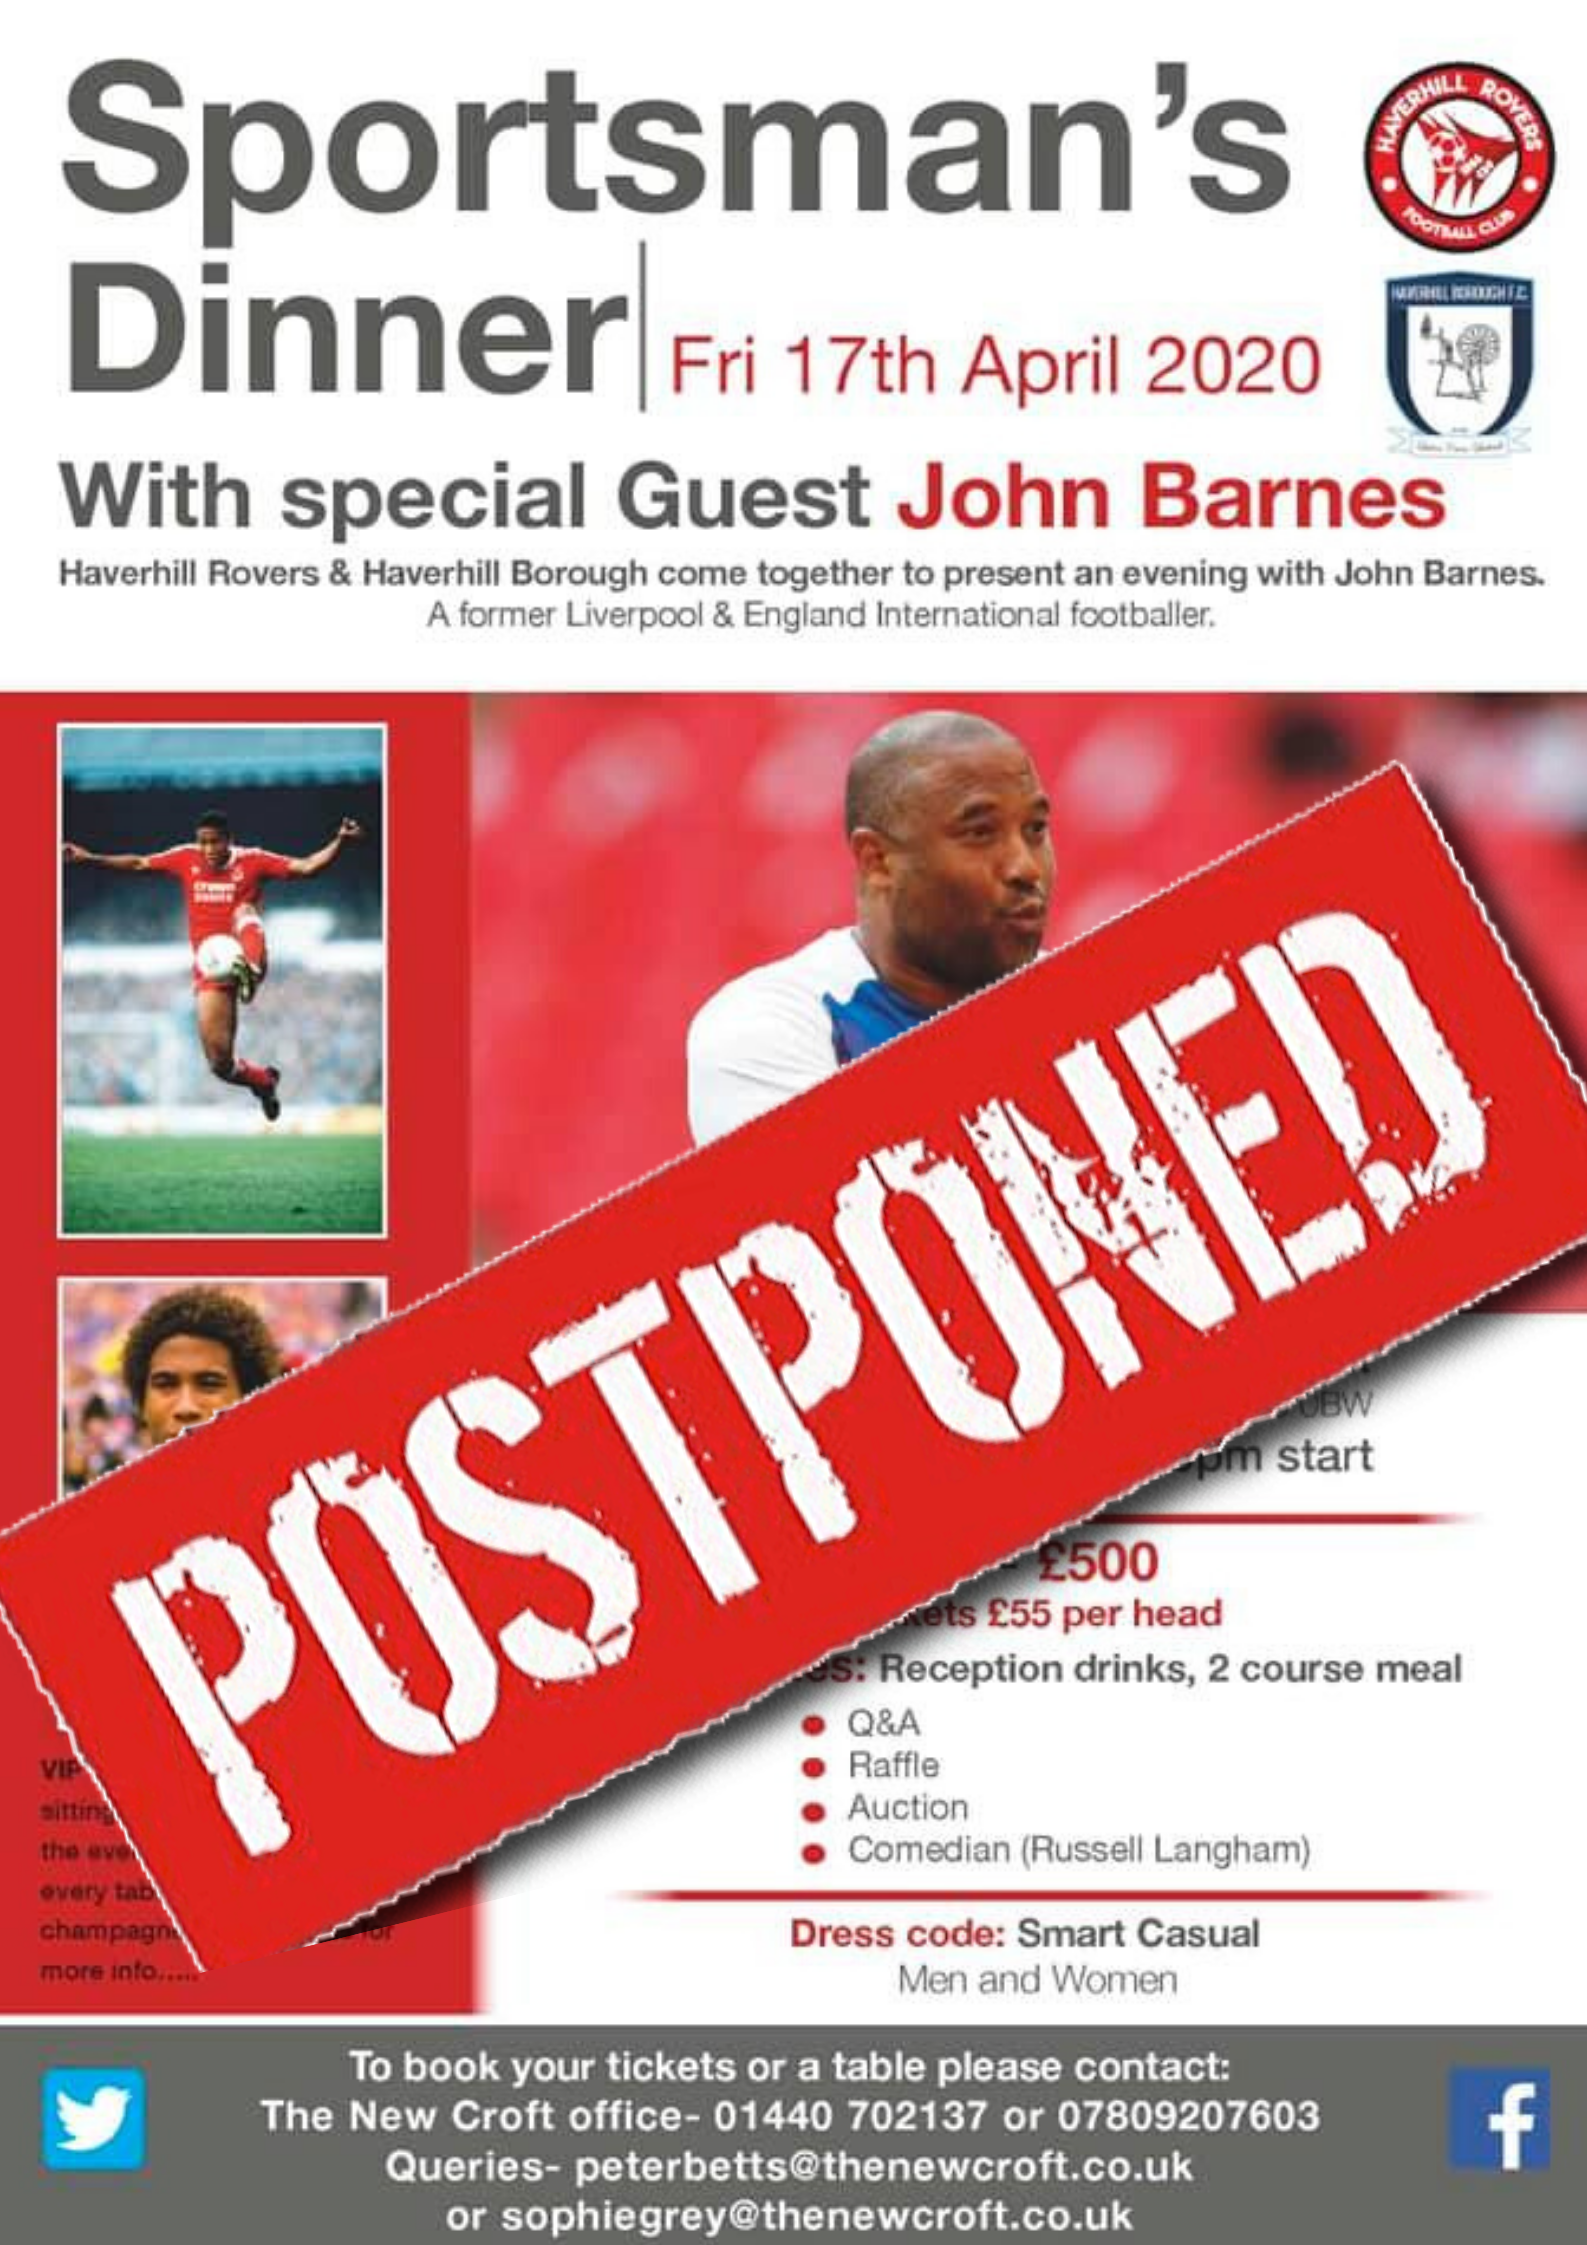 Sportsman's Dinner Postponed